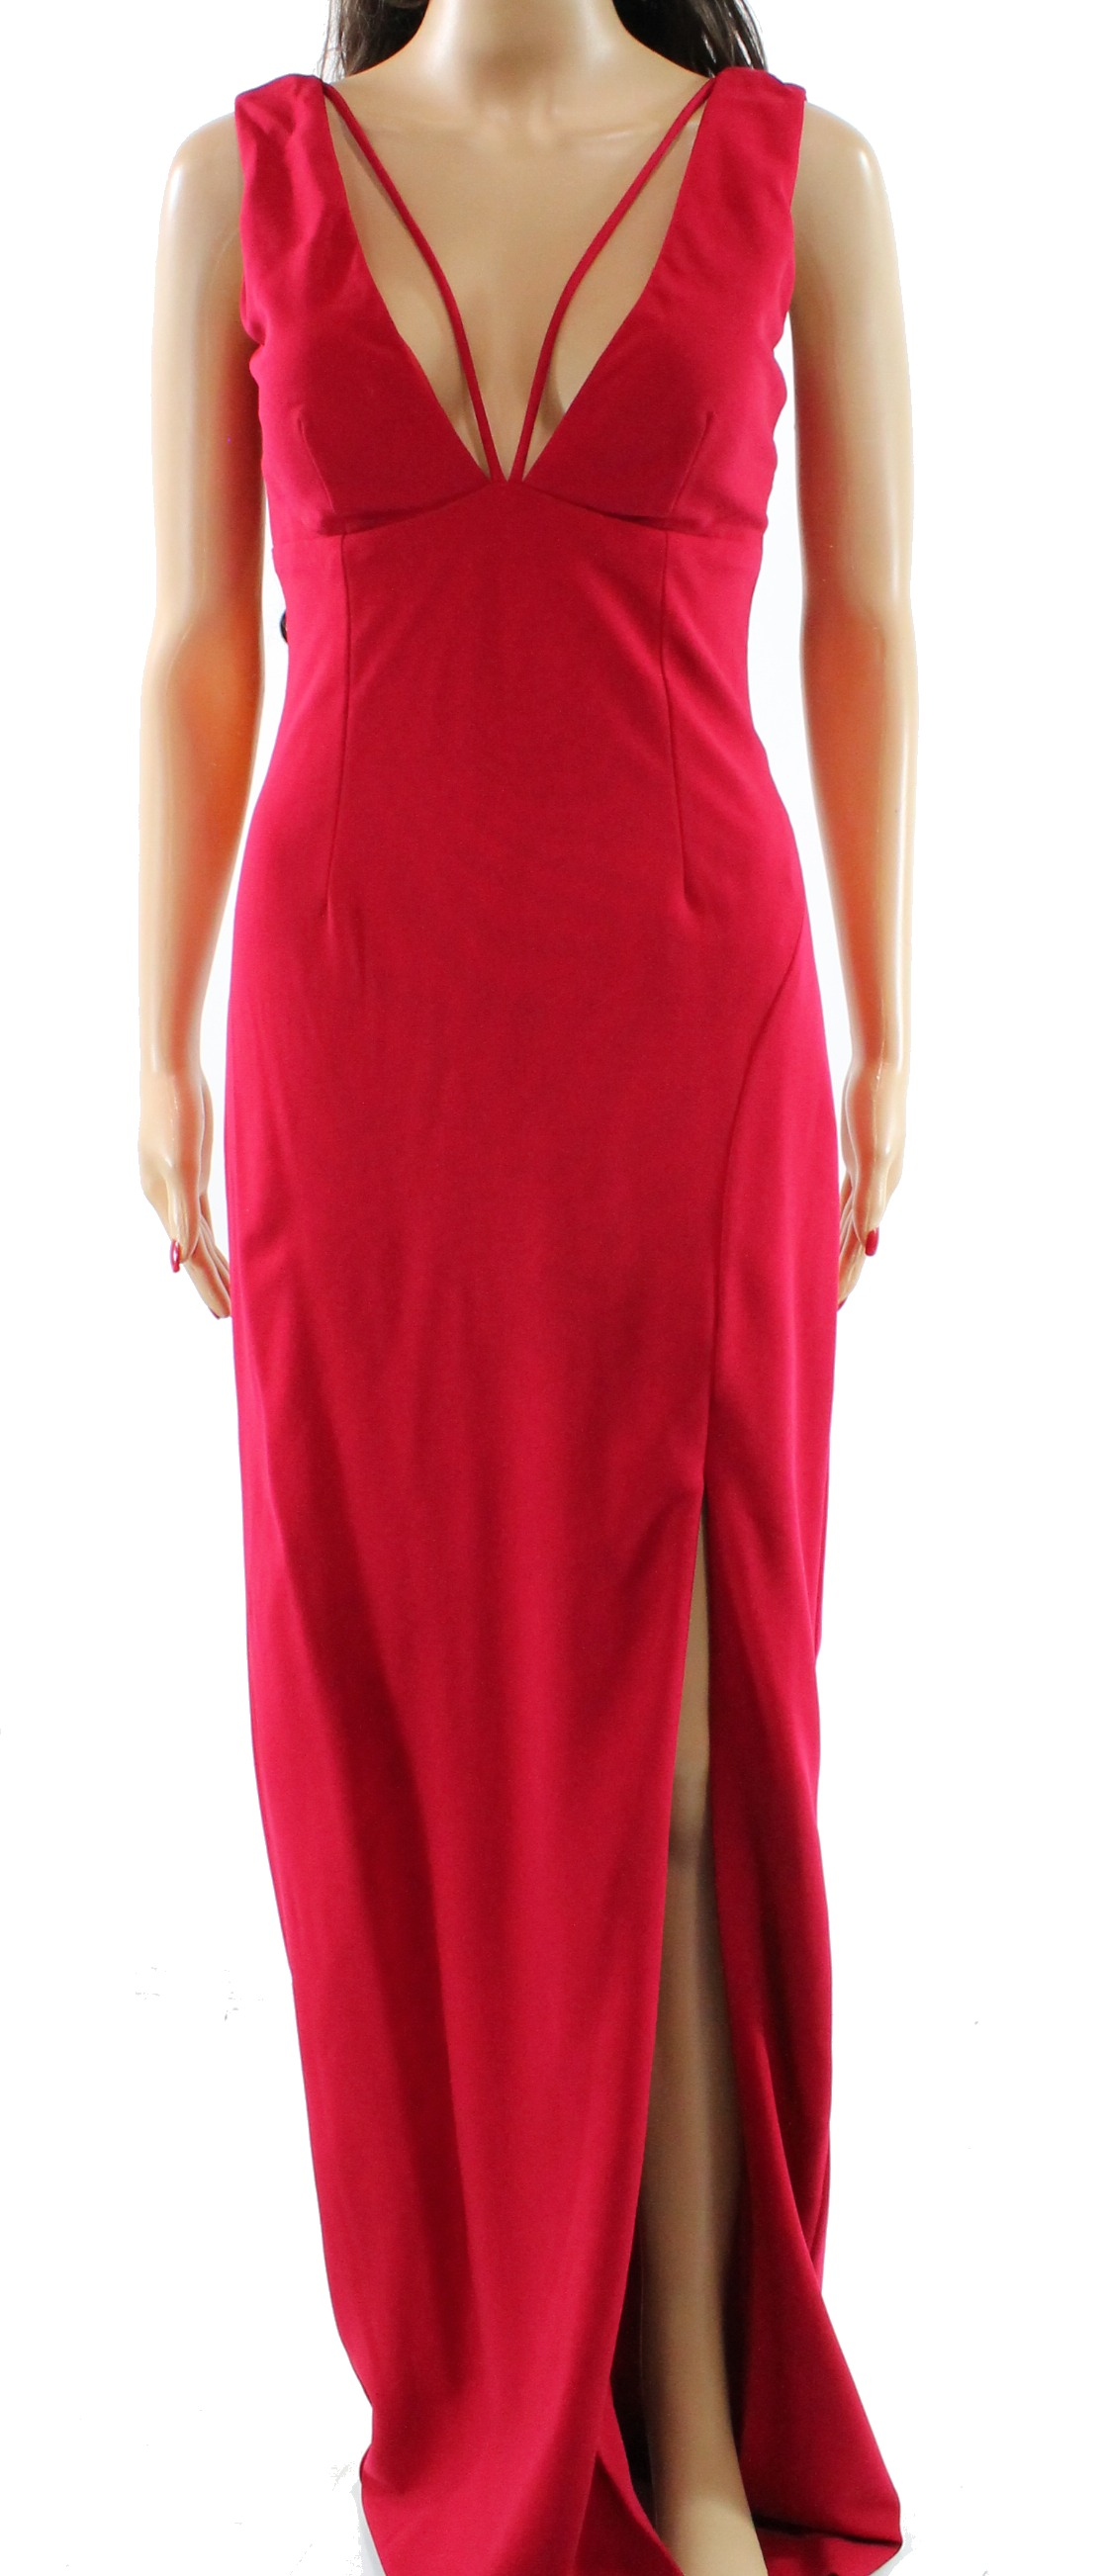 Nicole Miller NEW Red Women\'s Size 4 V-Neck Front Slit Prom Gown ...